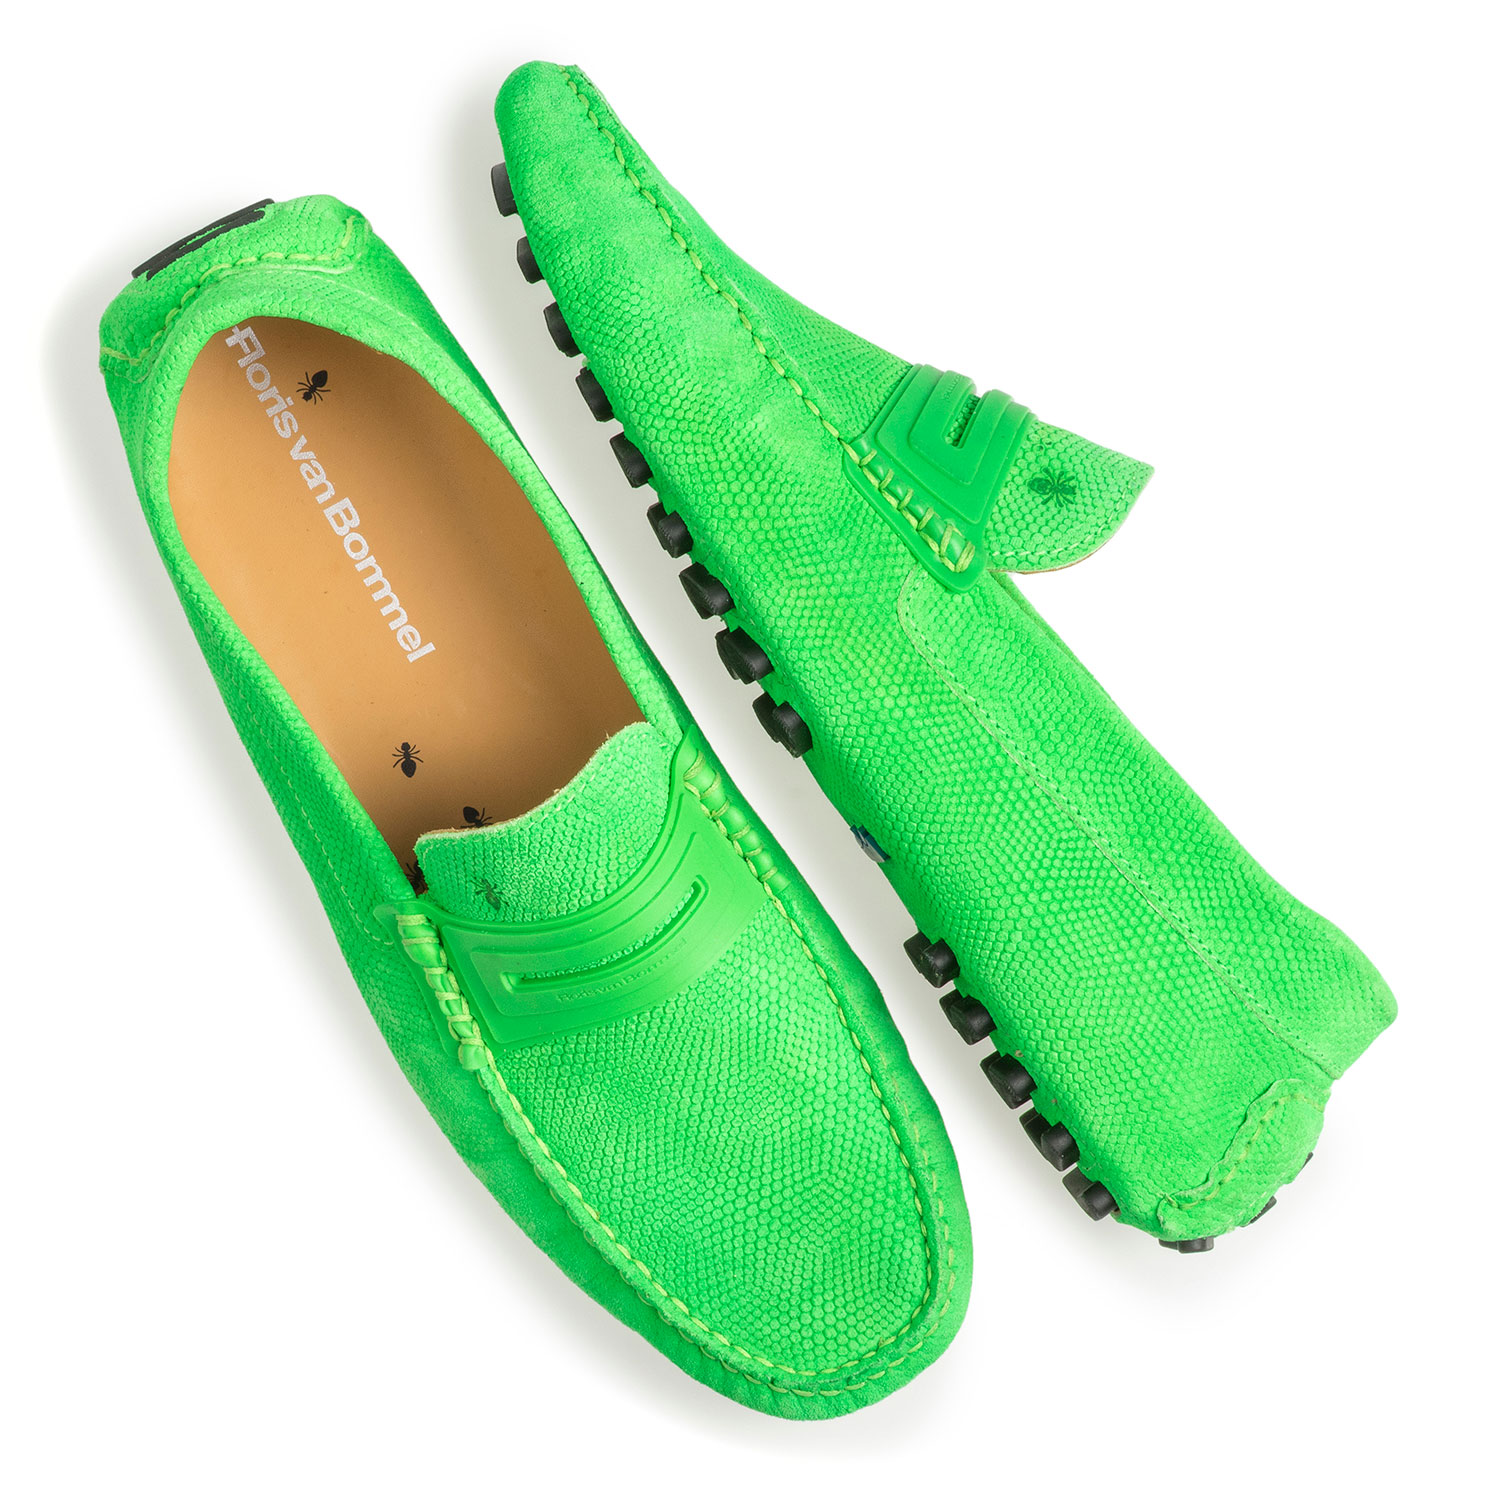 15215/00 - Premium fluorescent green leather moccasin